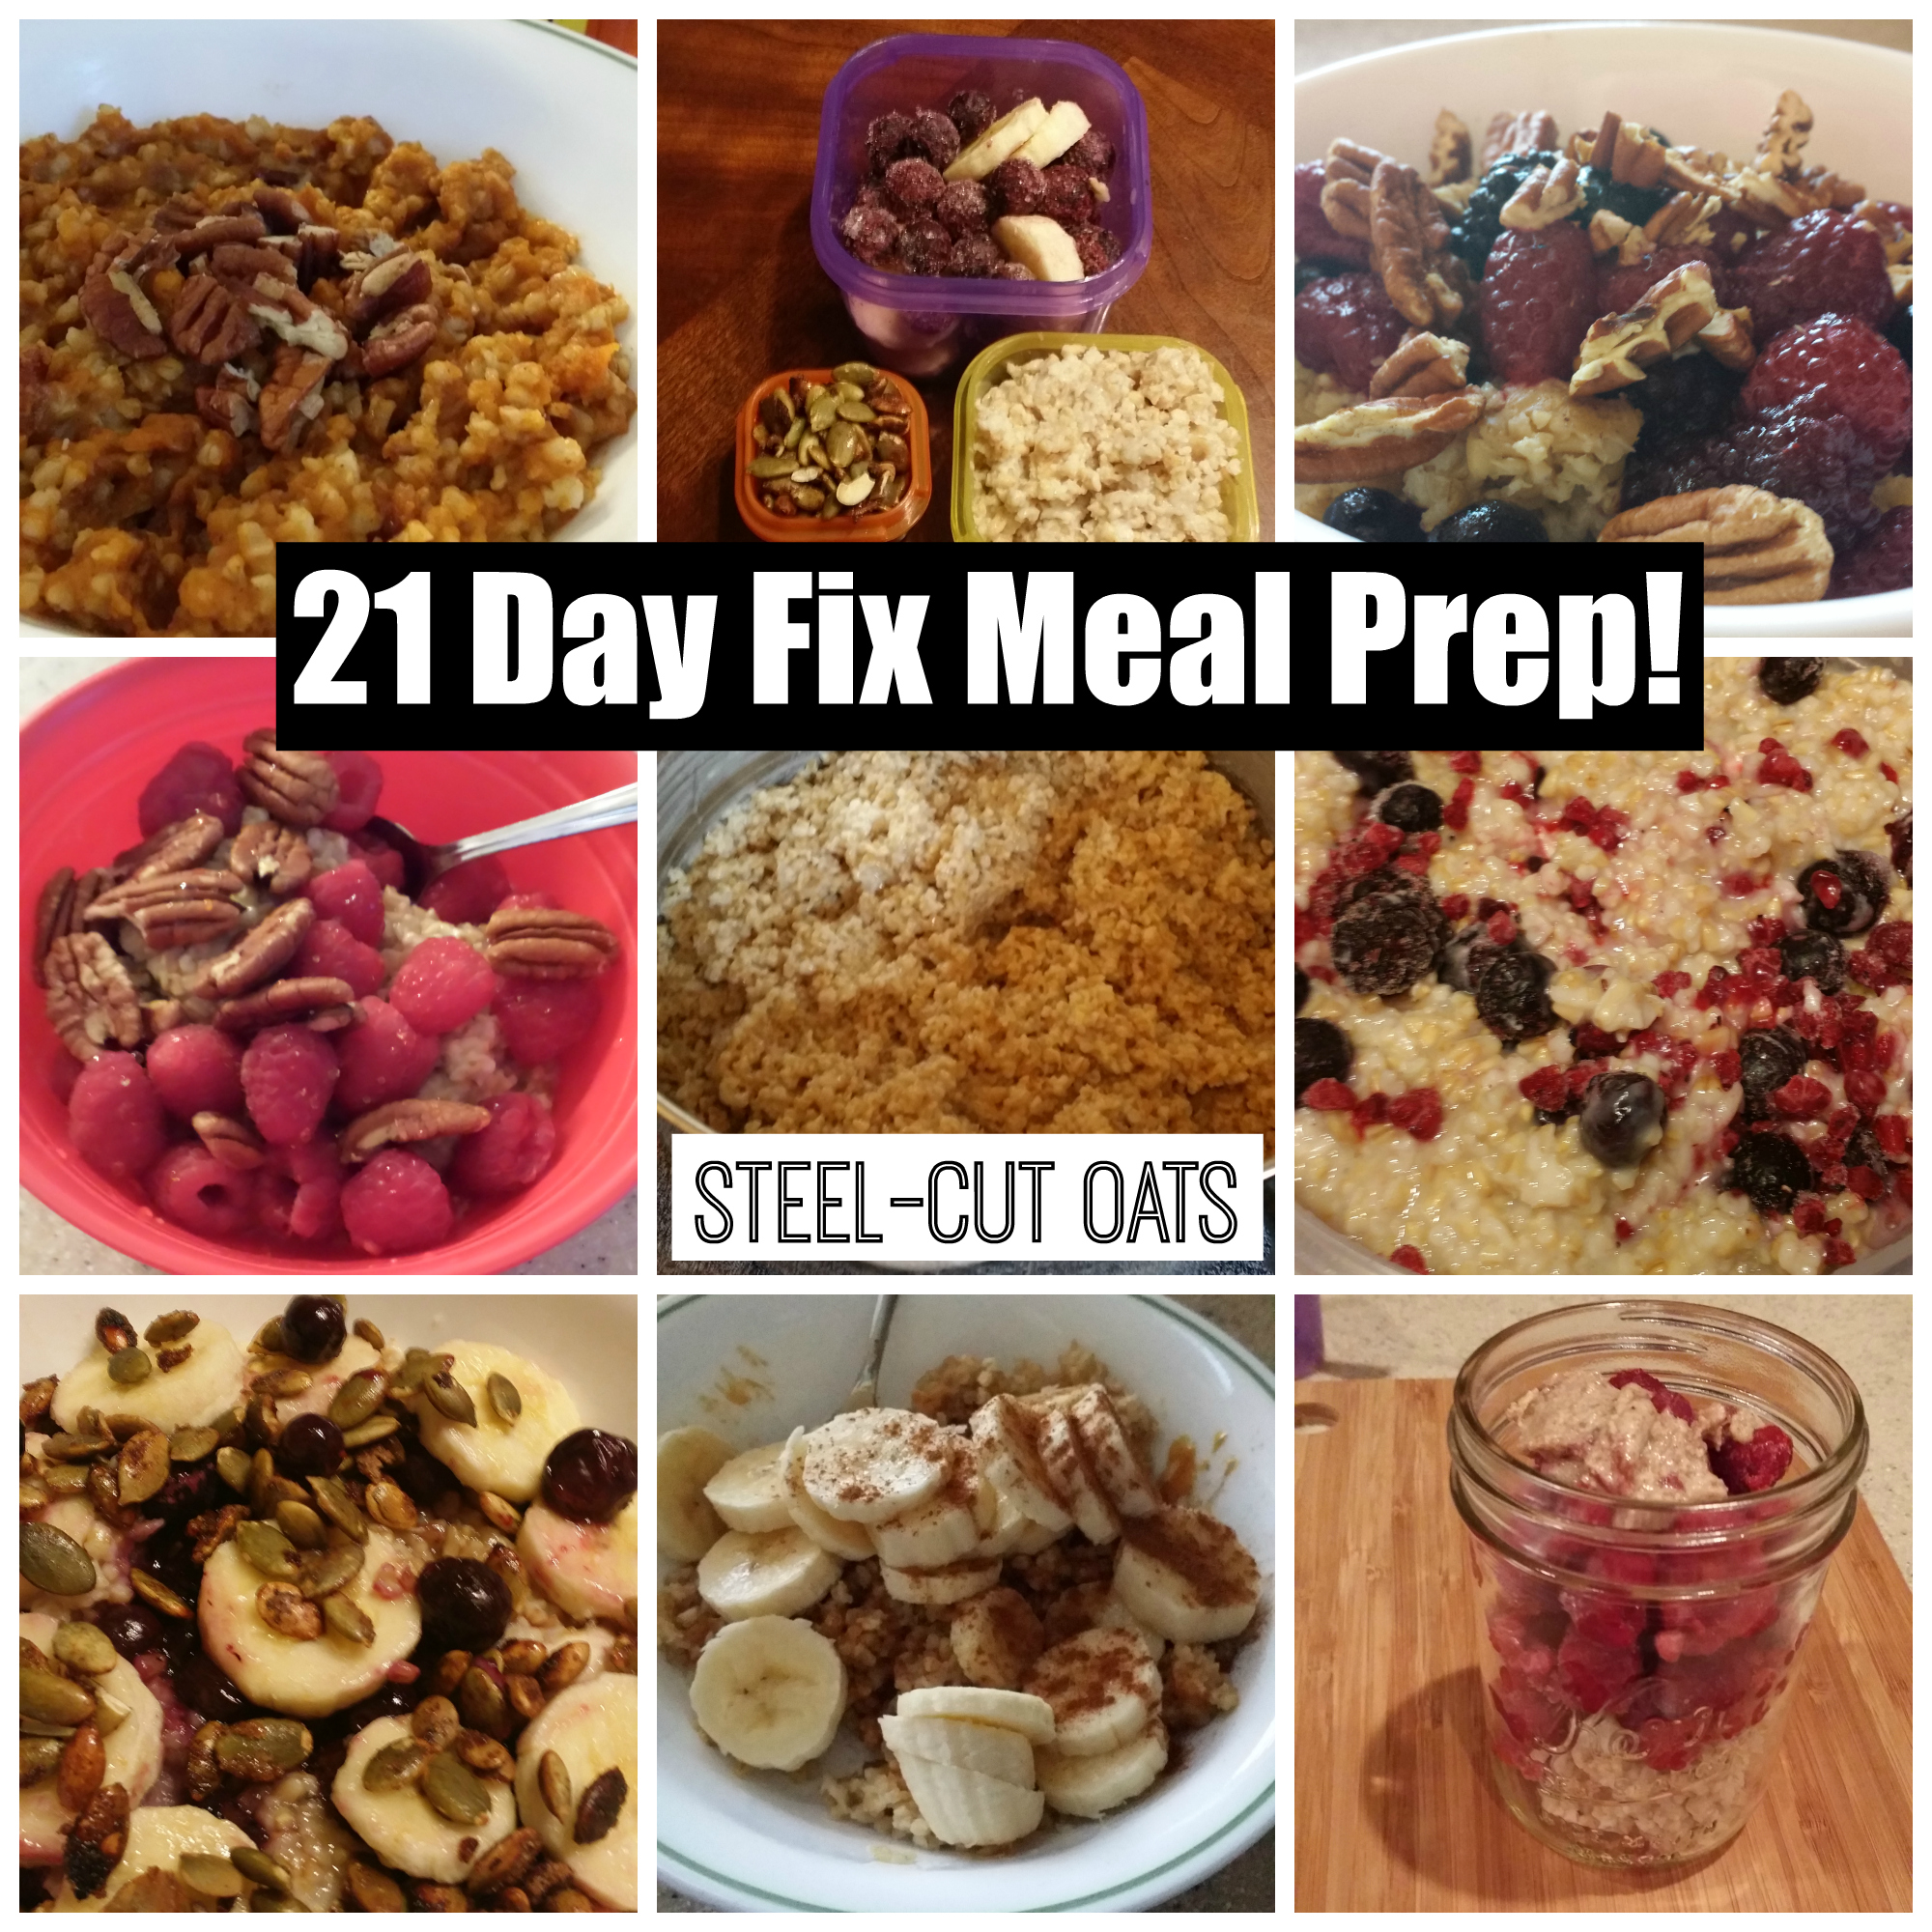 Steel-cut Oats — Meal Prep Idea